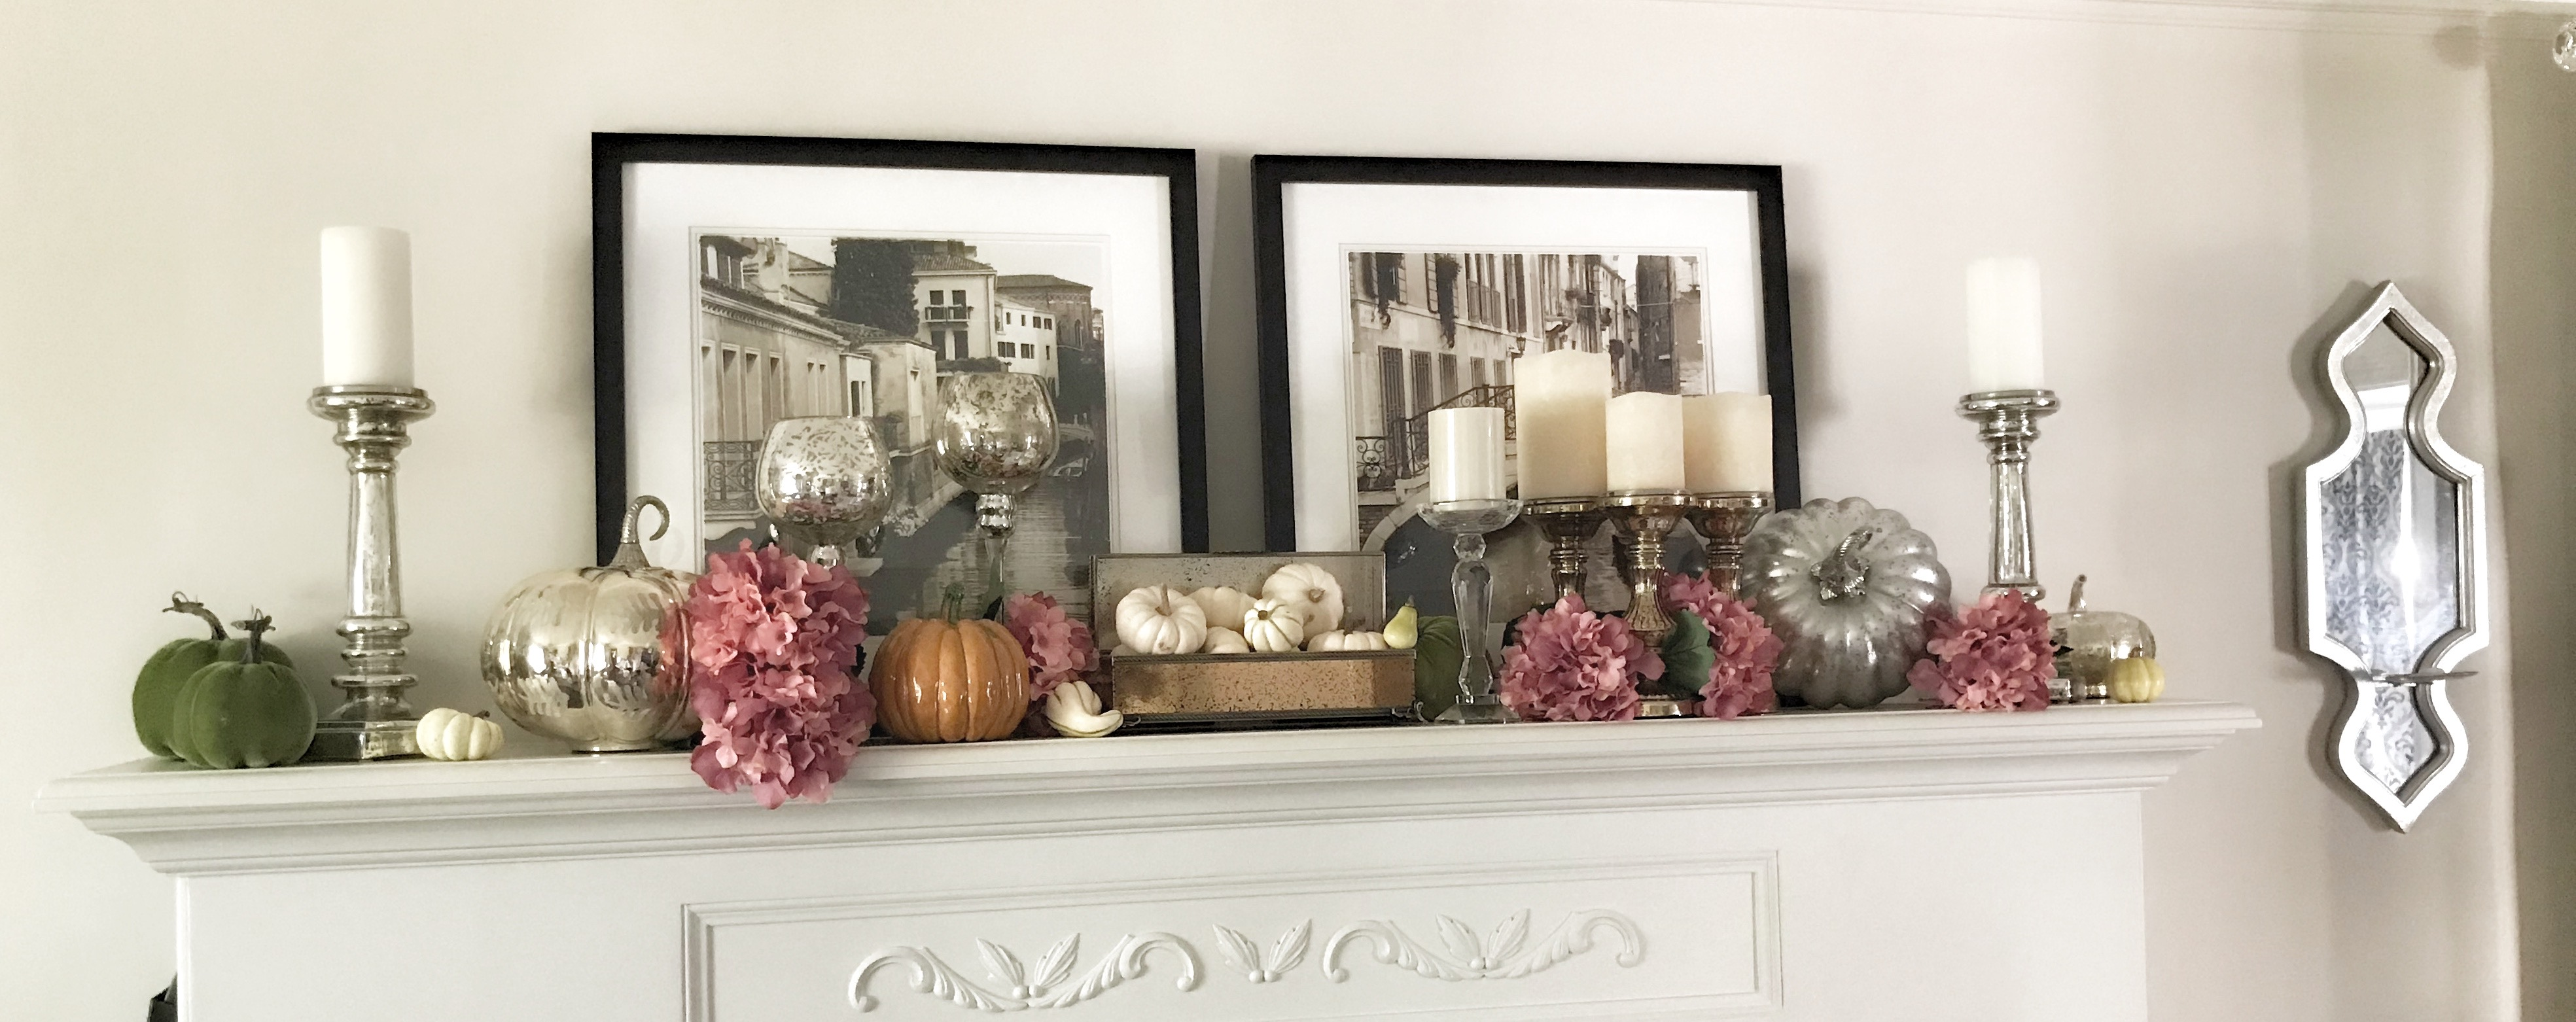 fall decor, fall tablescapes, fall dinner table, fall fireplace mantle, thanksgiving dinner, thanksgiving table